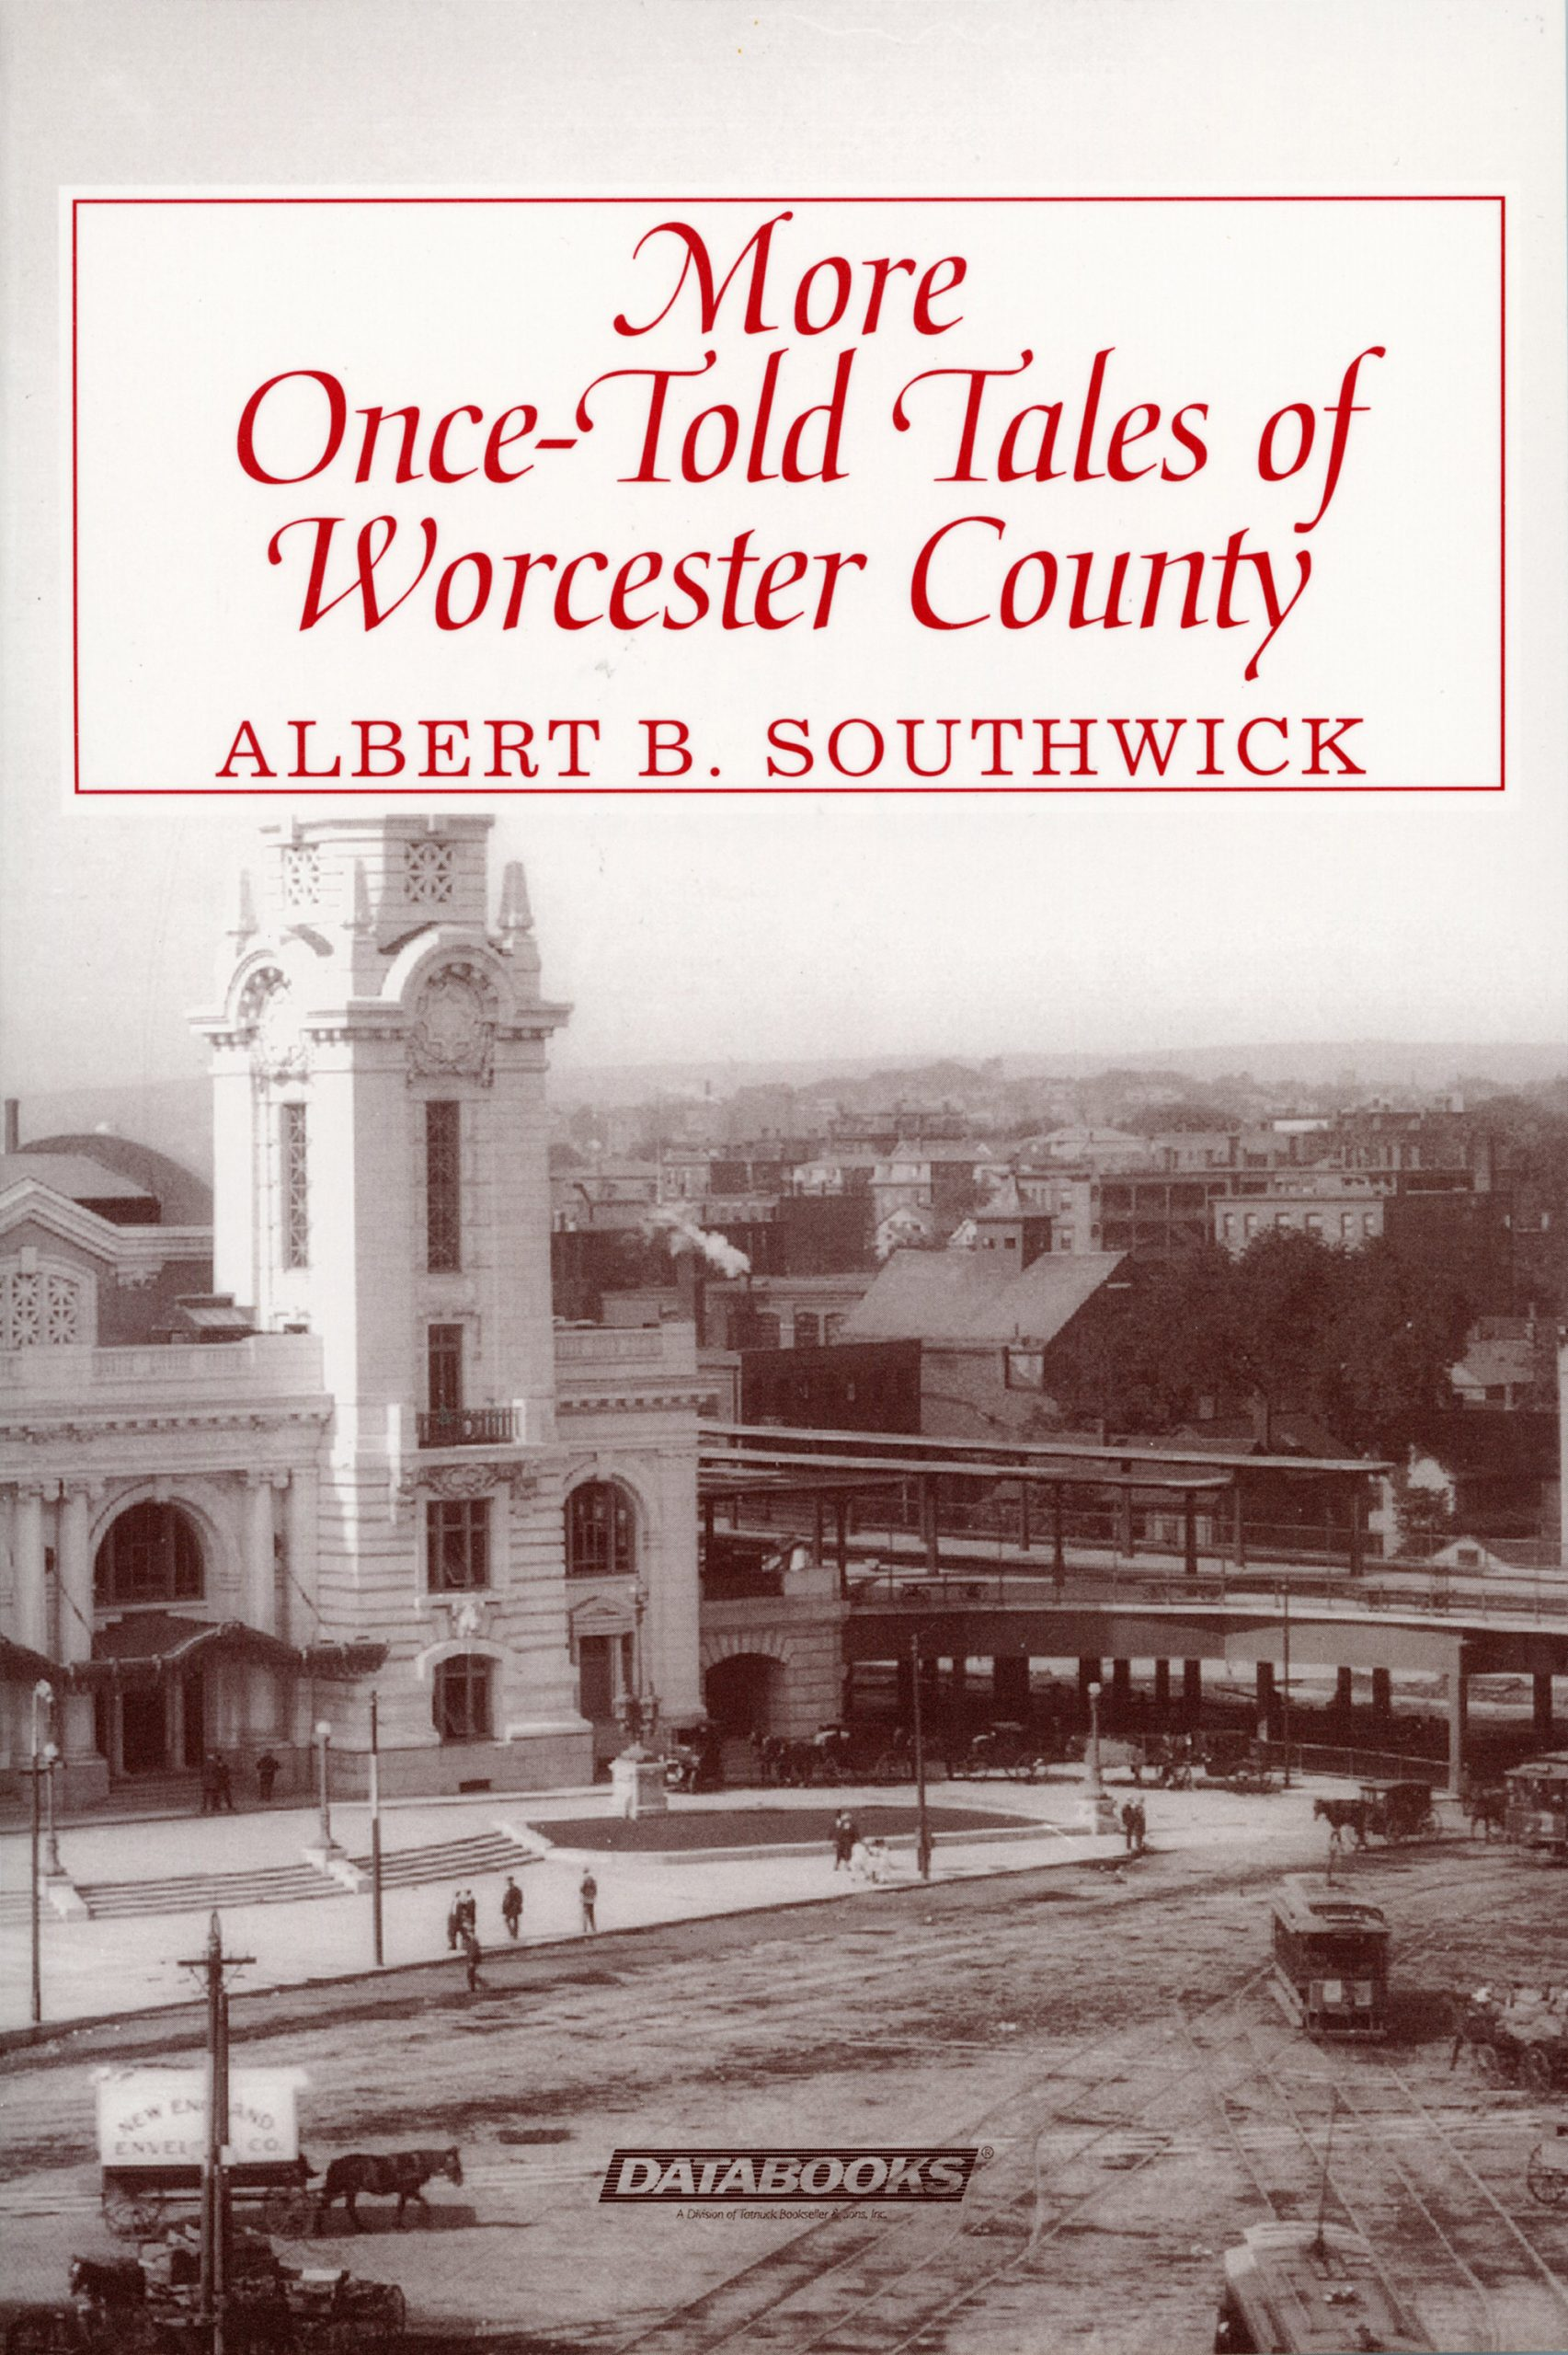 More Once Told Tales of Worcester County by Albert B. Southwick